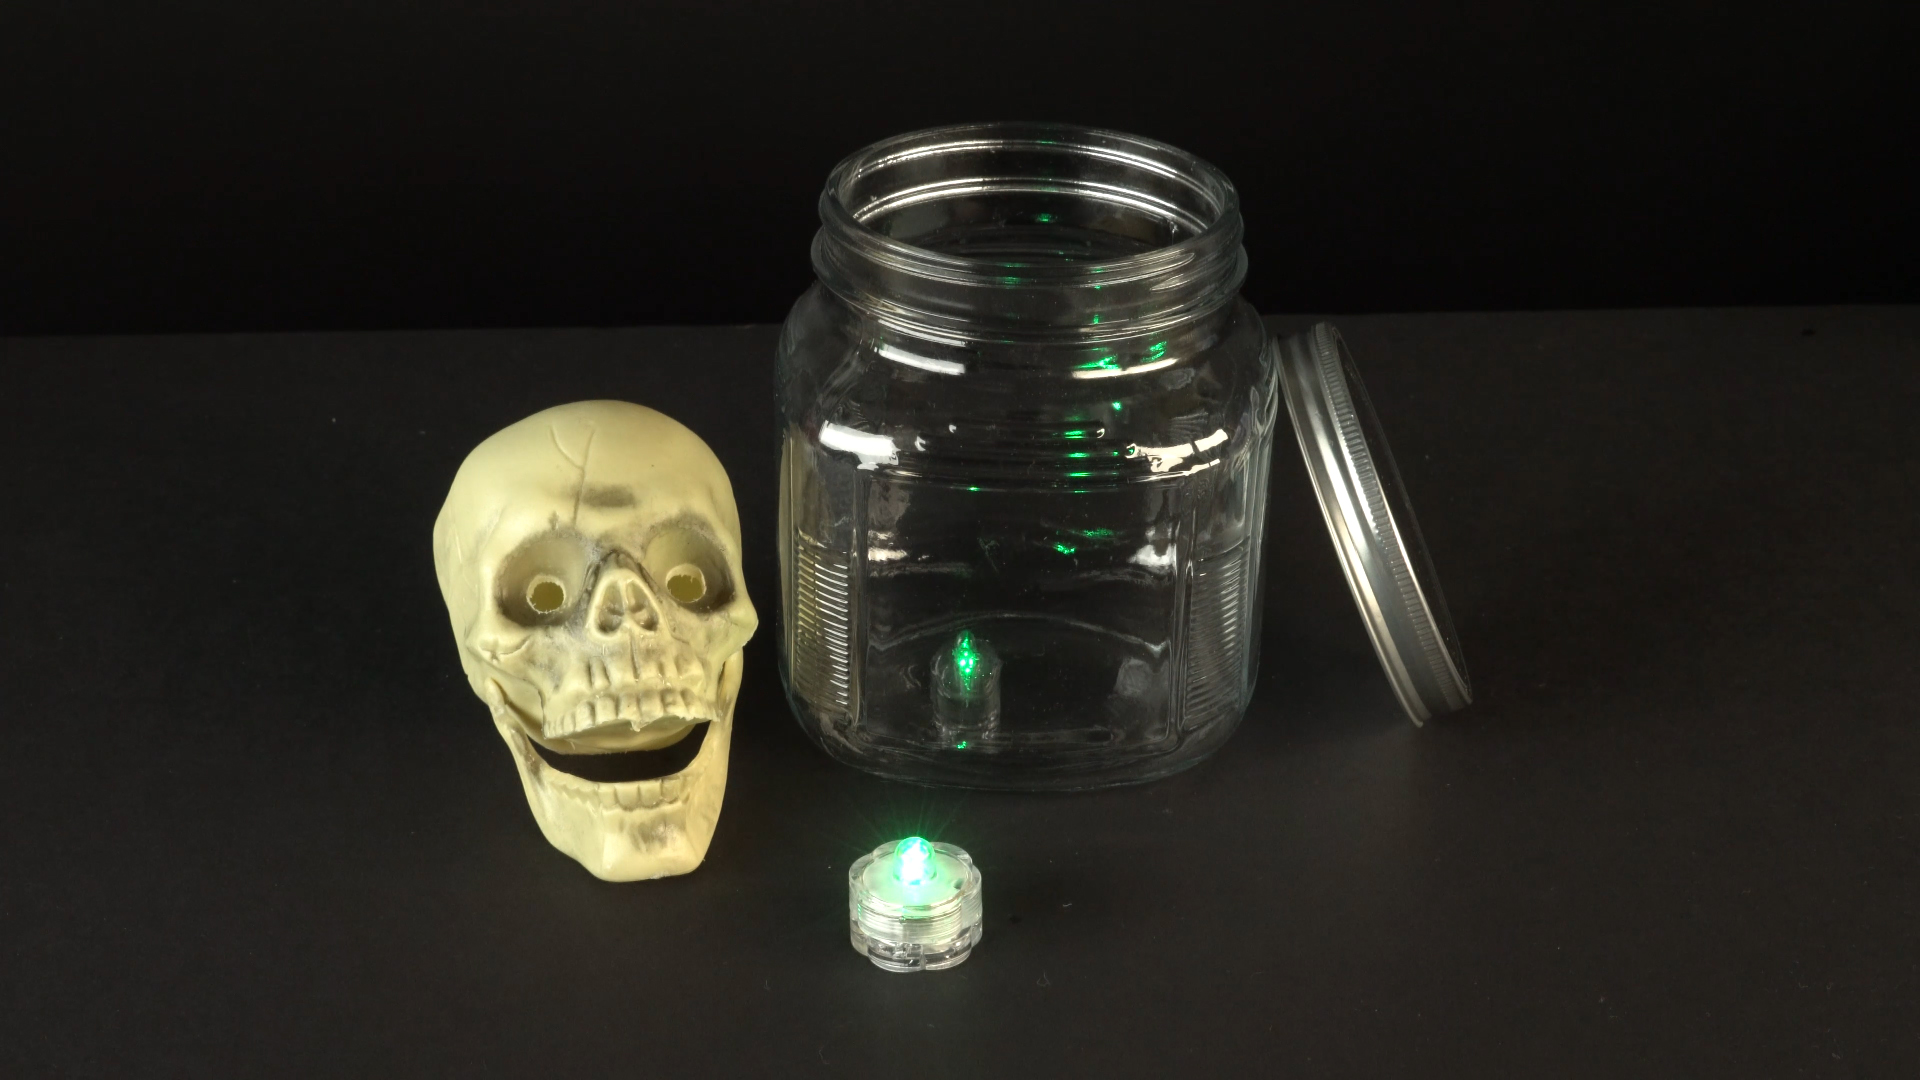 Halloween crafts with color-changing led tea lights - skull materials